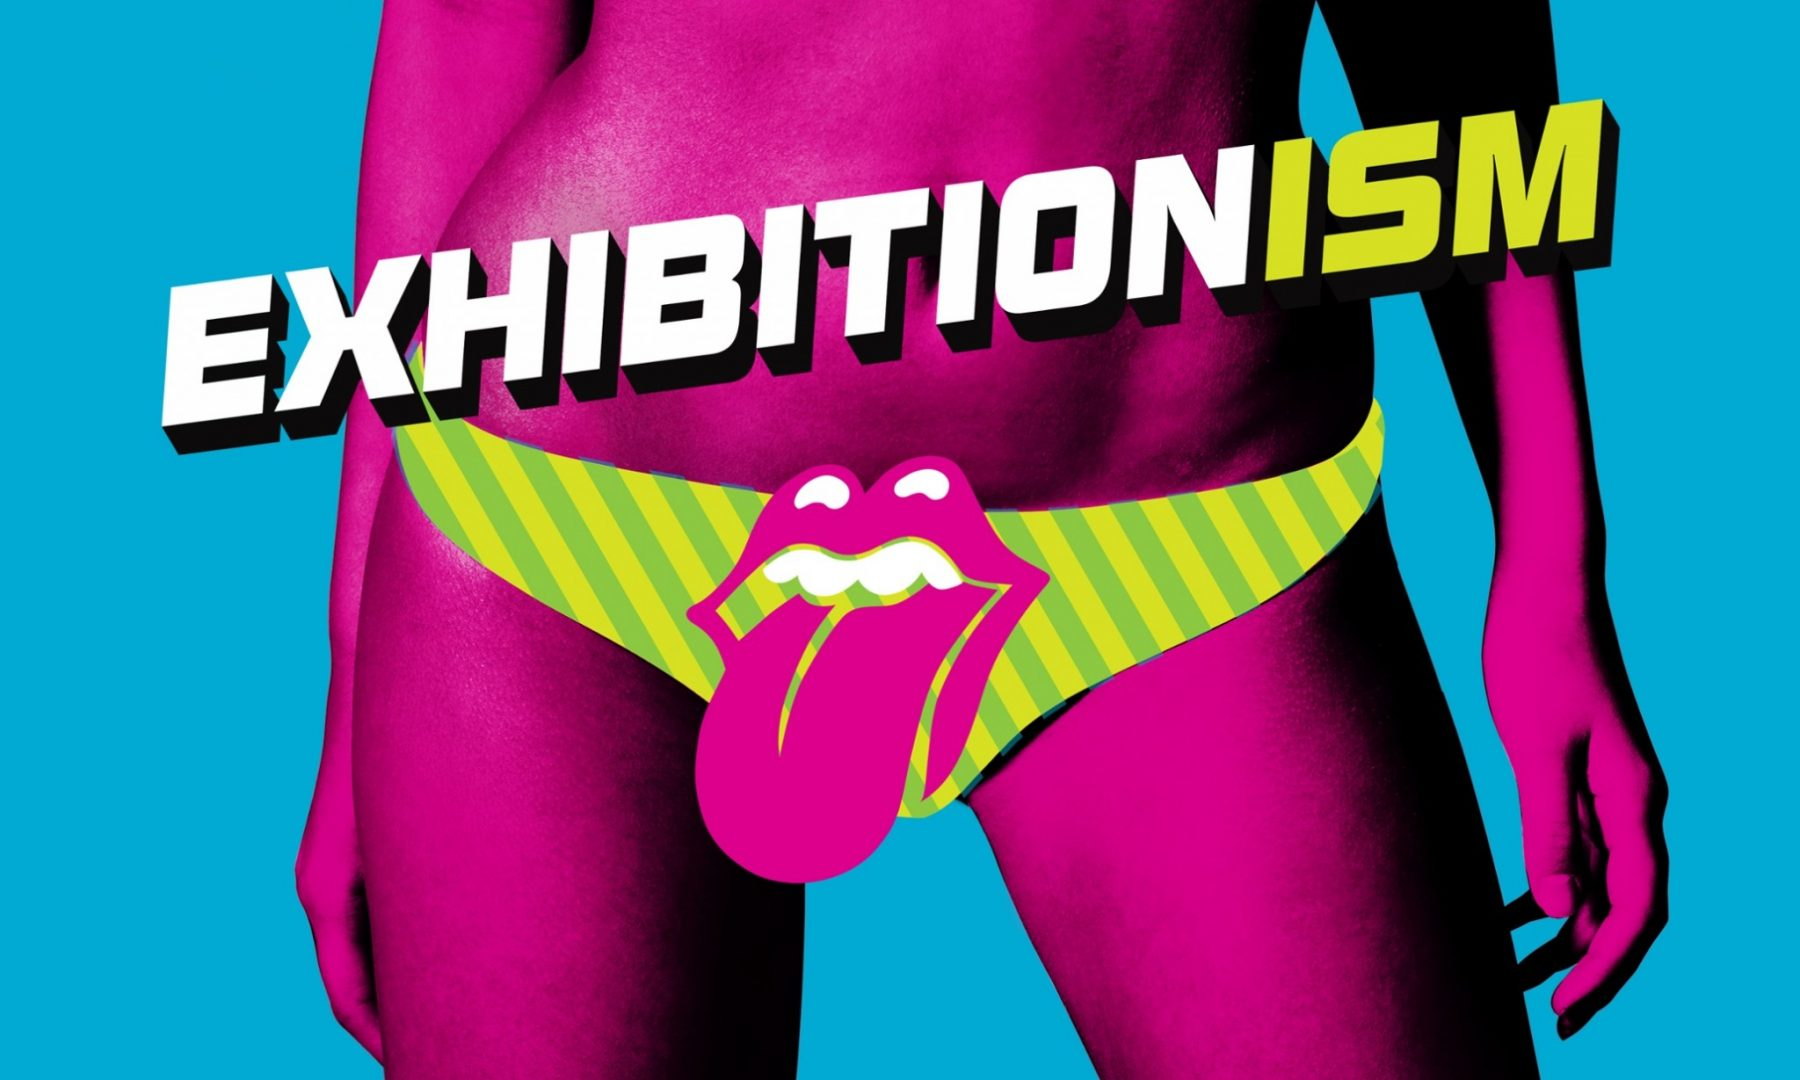 The poster for The Rolling Stones' Exhibitionism London exhibition